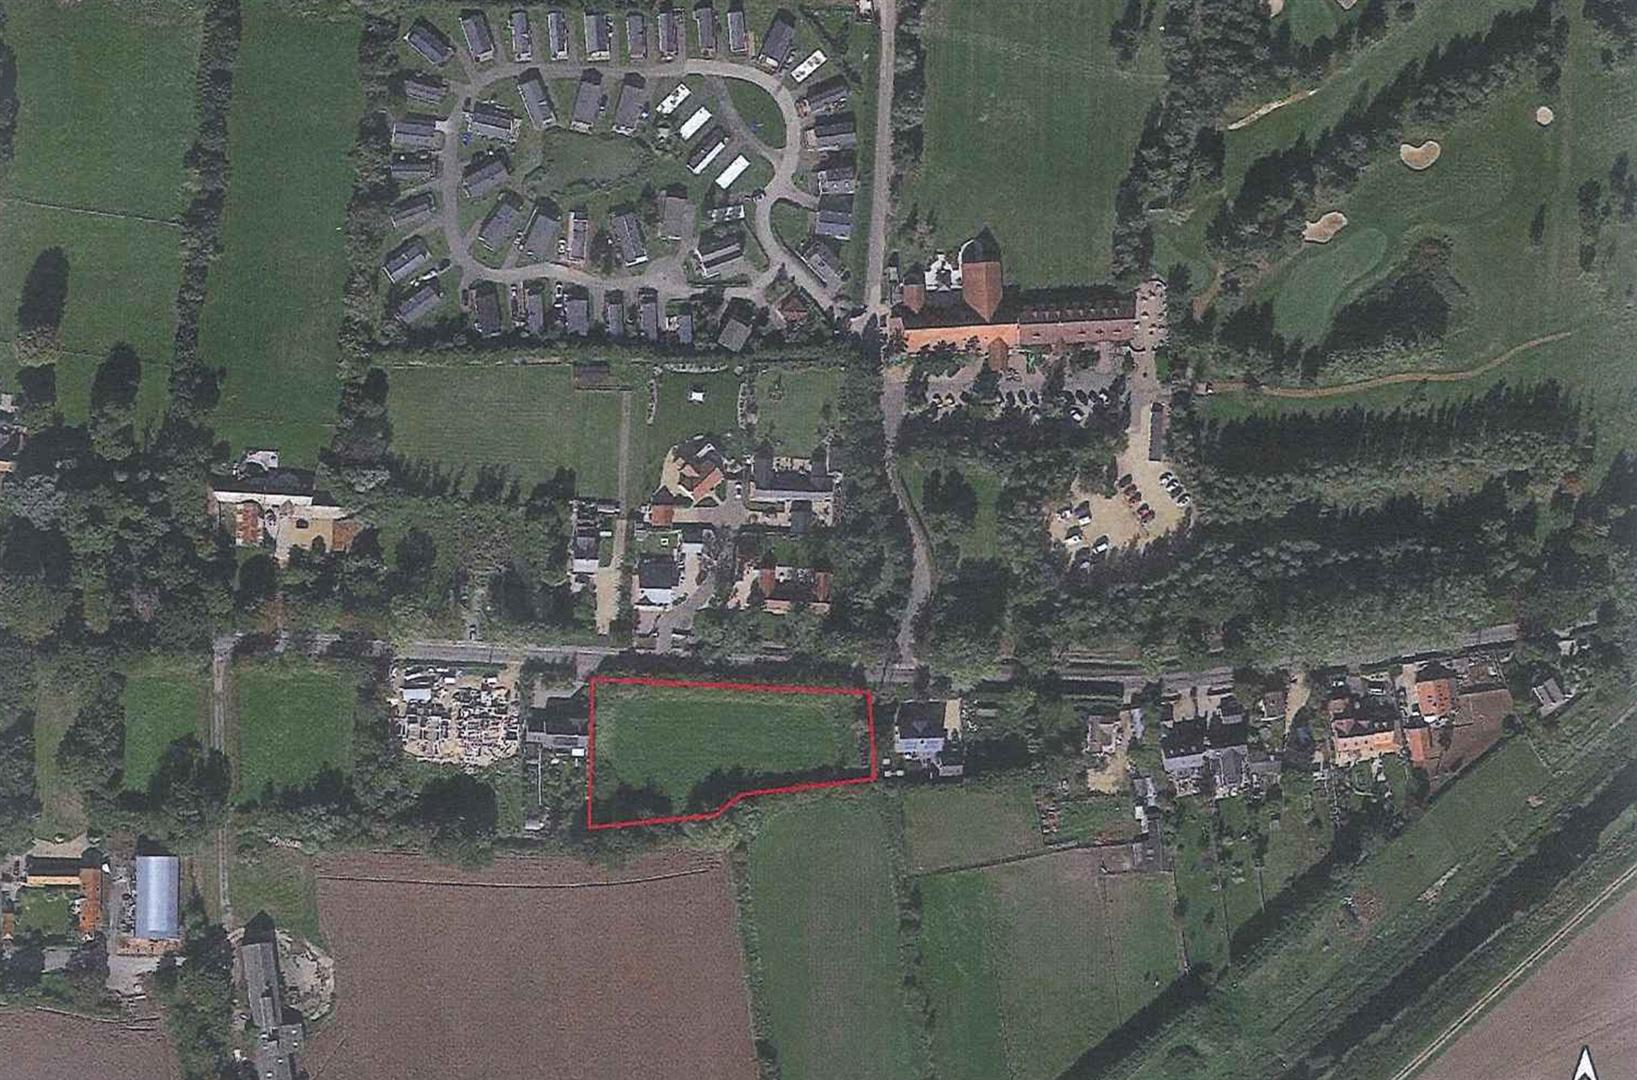 Land (commercial) for sale in Wisbech, PE13 5NE, PE13